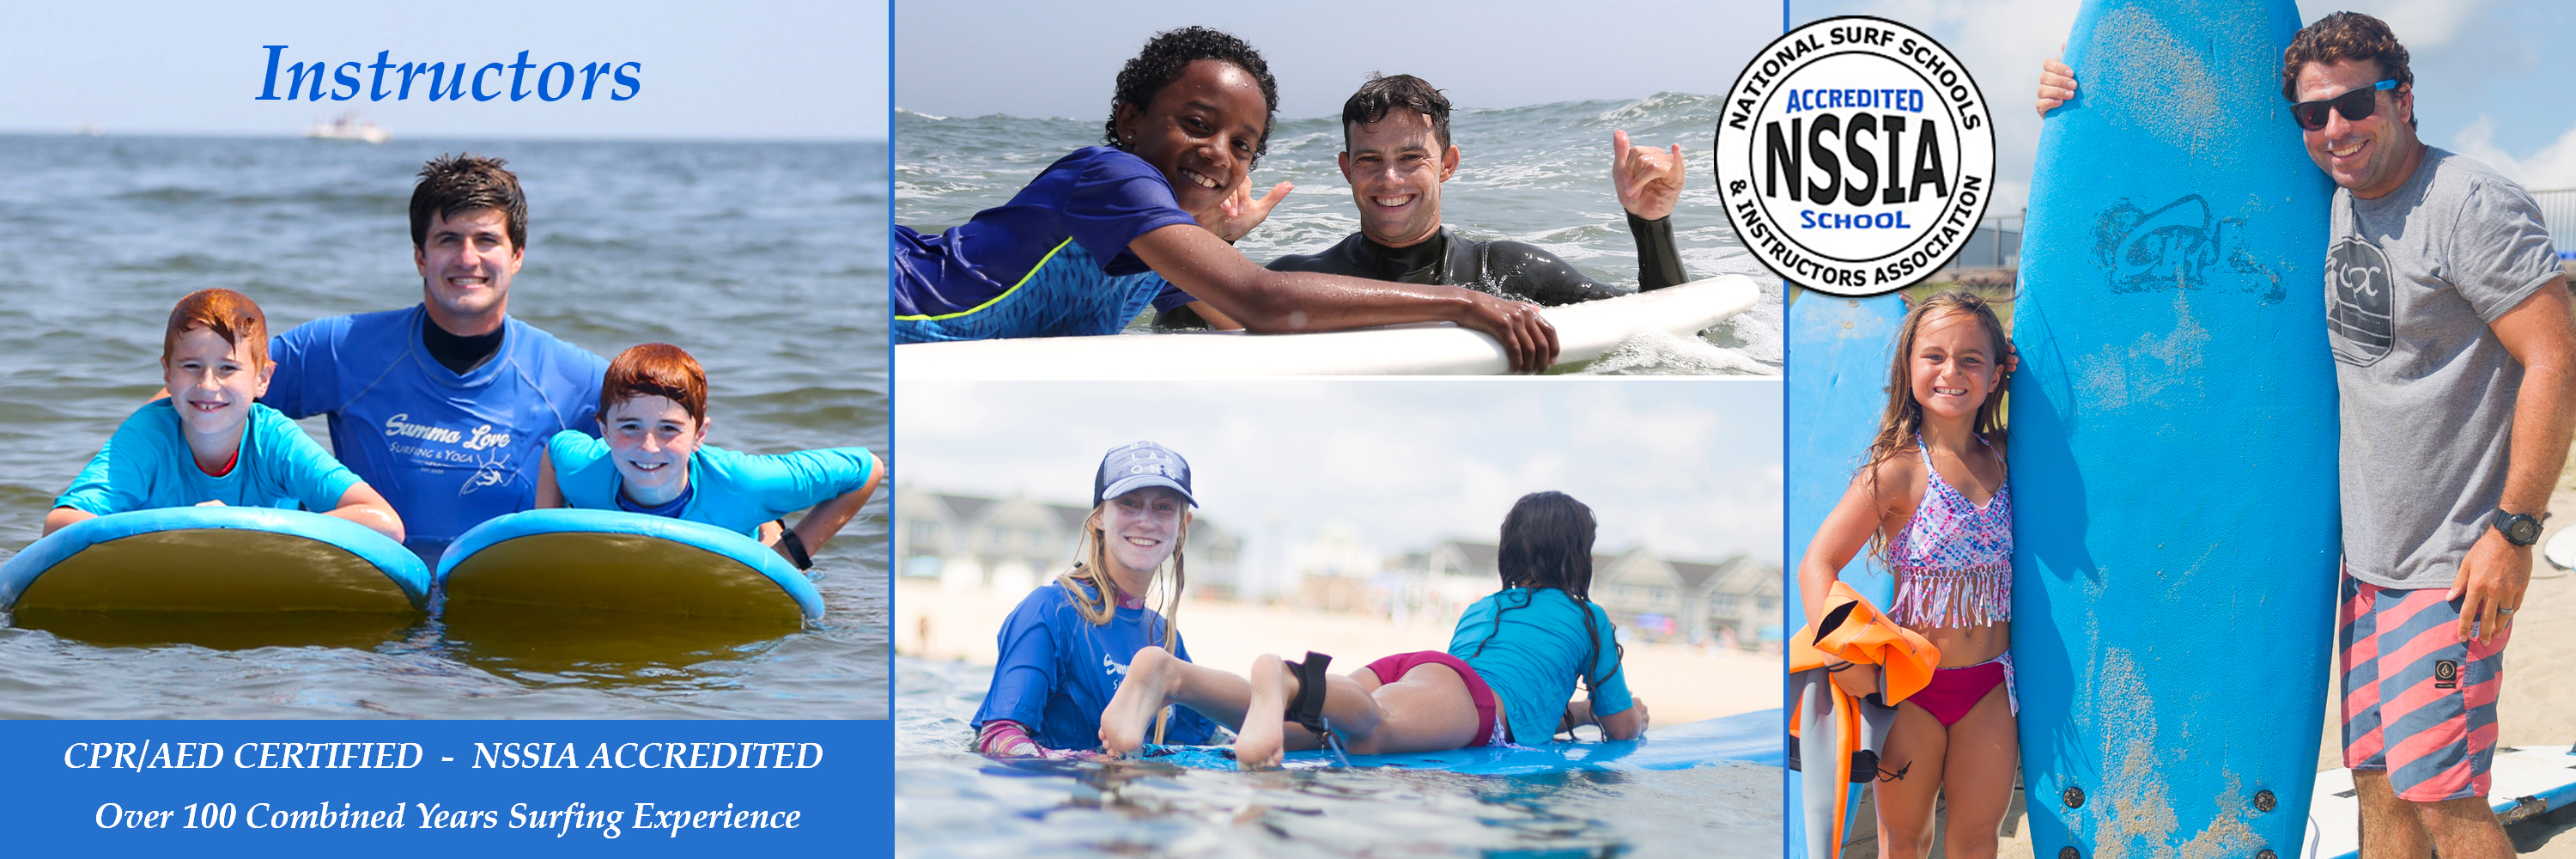 Summa Love Instructors, Surf Camp, NJ Surf Lessons